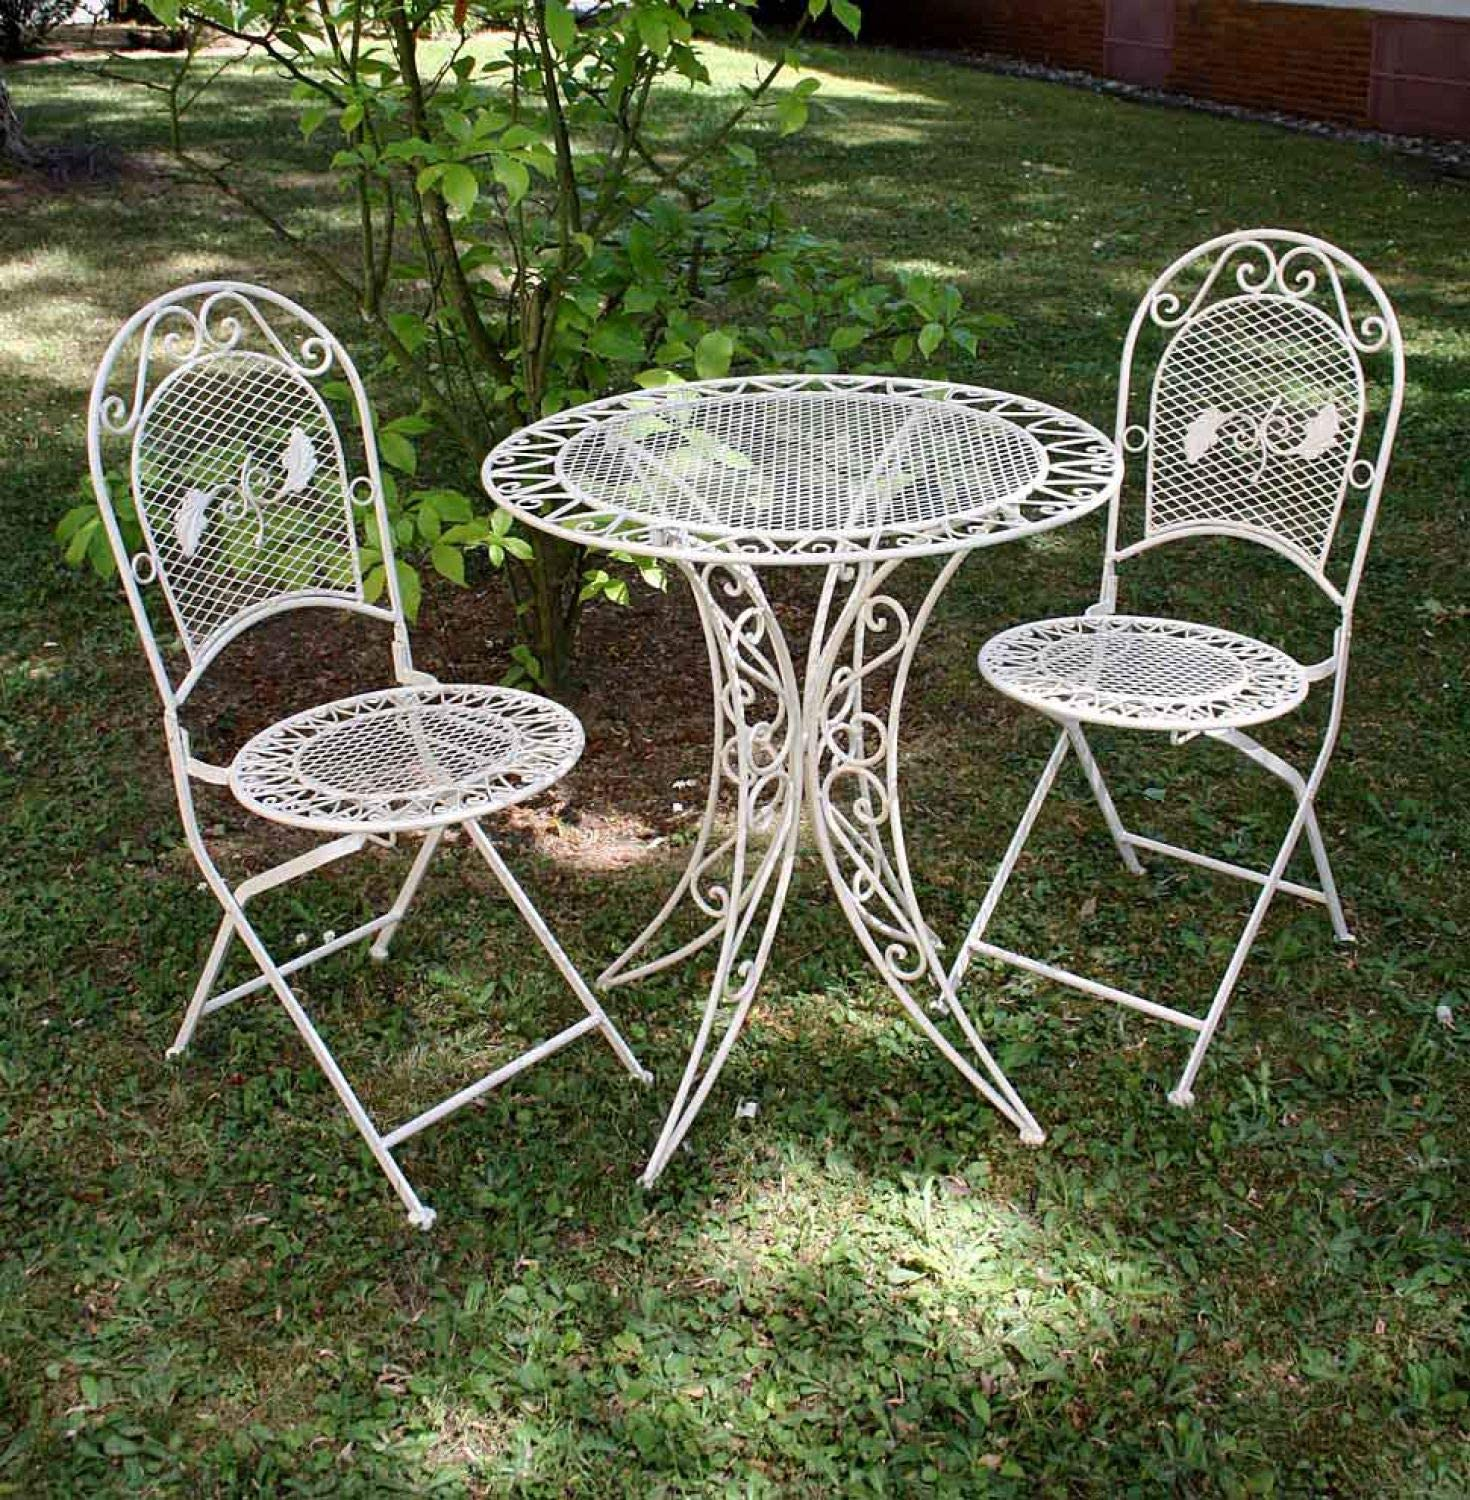 Aubaho Vintage Garden Furniture Set Table 2 Chairs Wrought Iron Cream White Amazon Co Uk Garden Outdoors